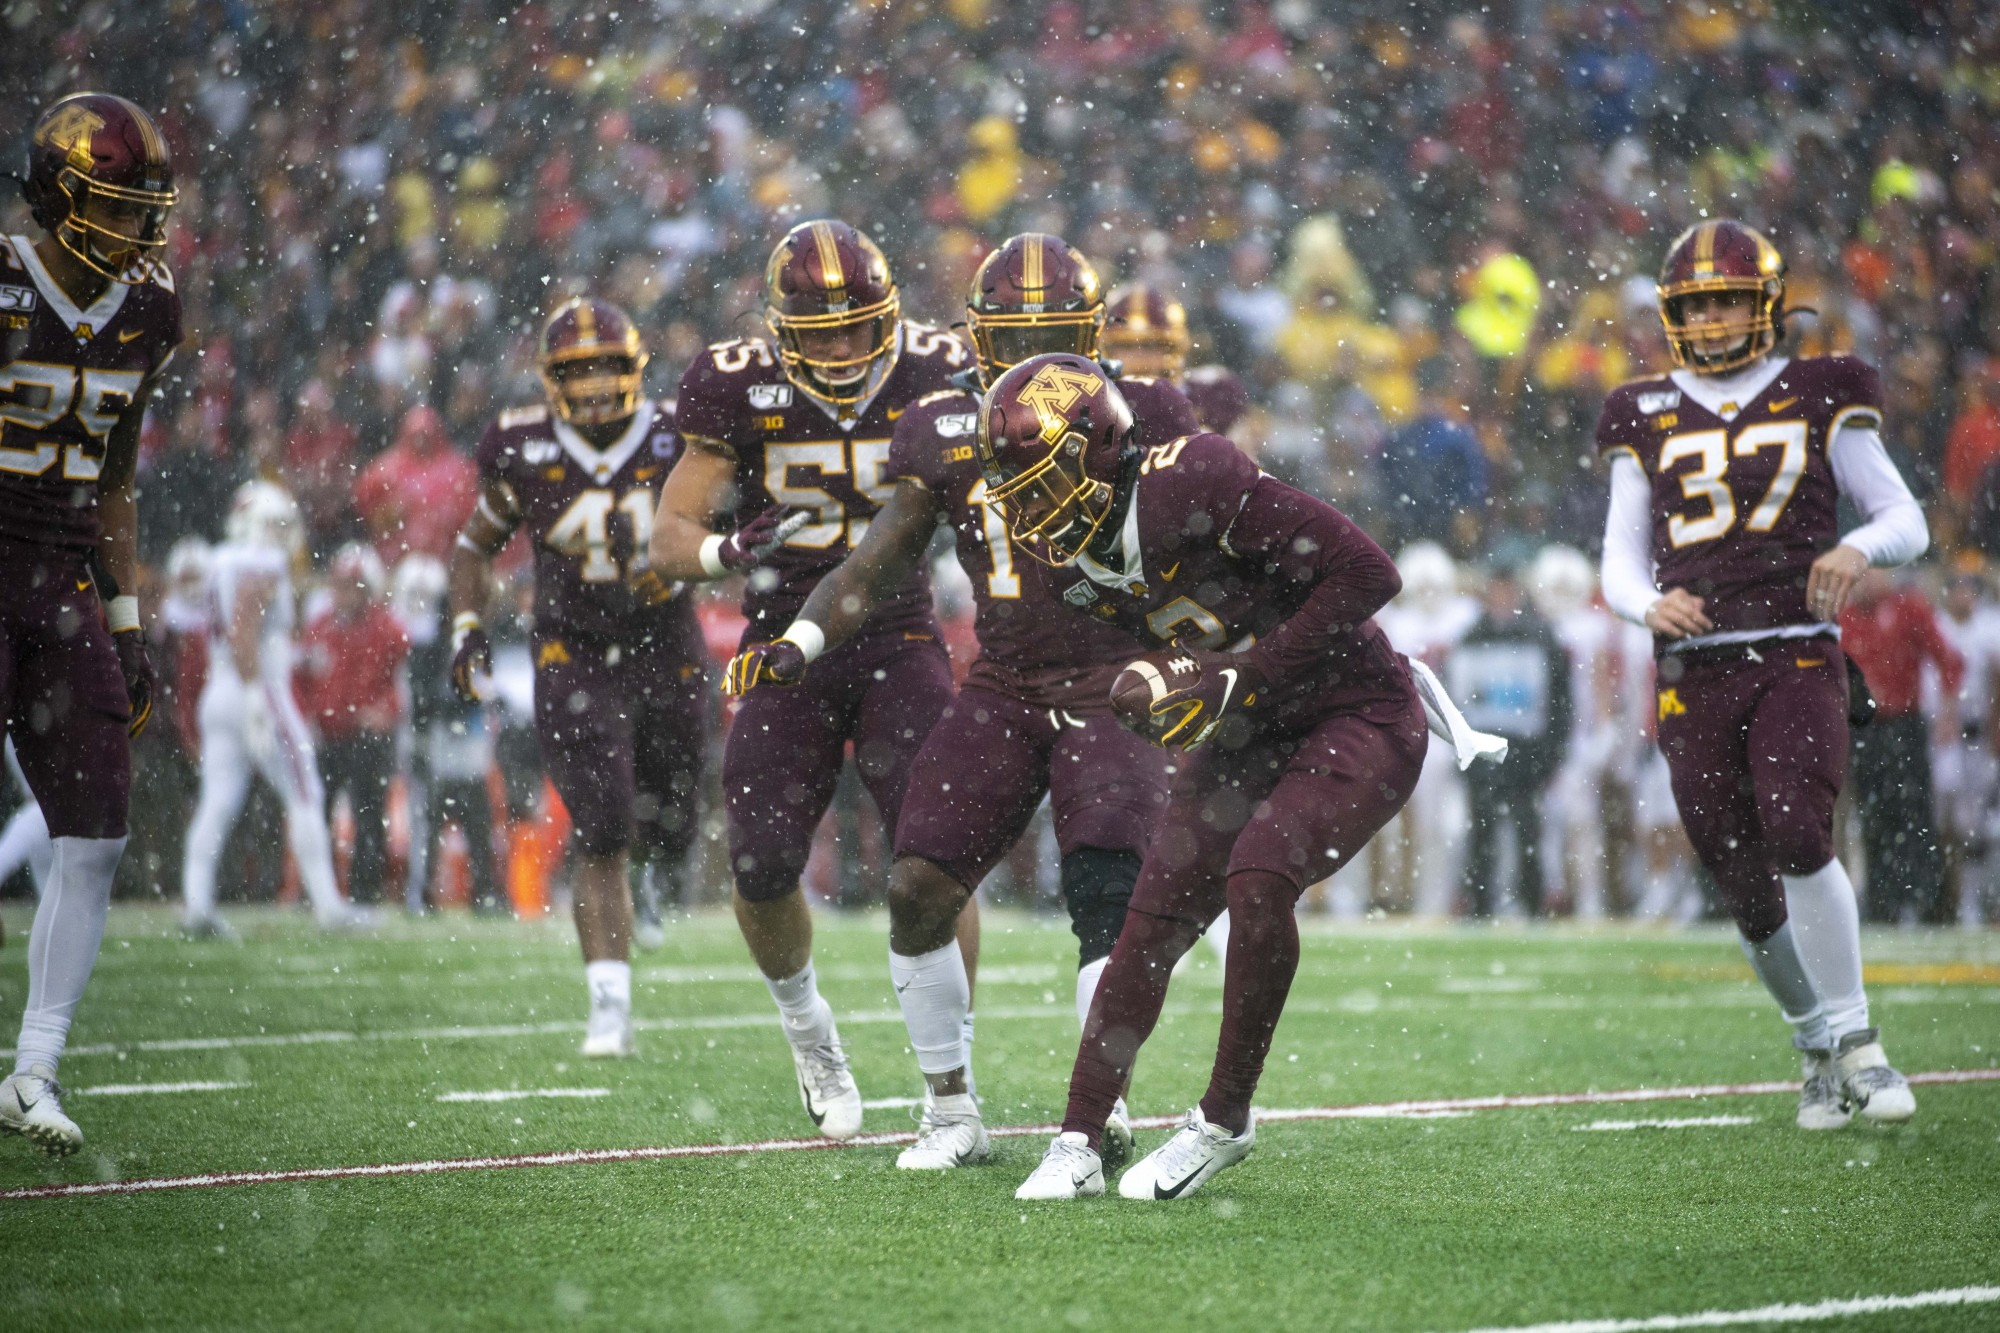 Defensive back Phillip Howard catches the ball during the game against the Badgers at TCF Bank Stadium on Saturday, Nov. 30.